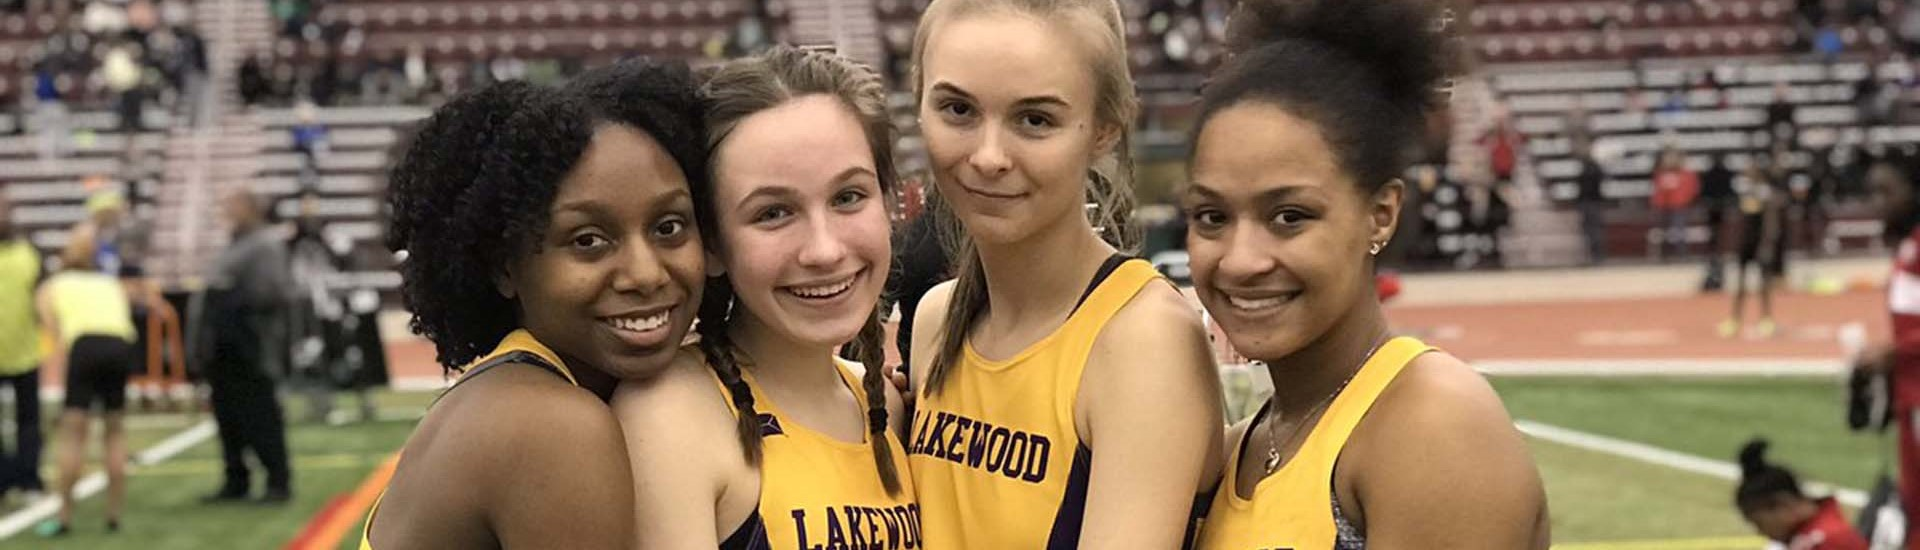 Girls track relay